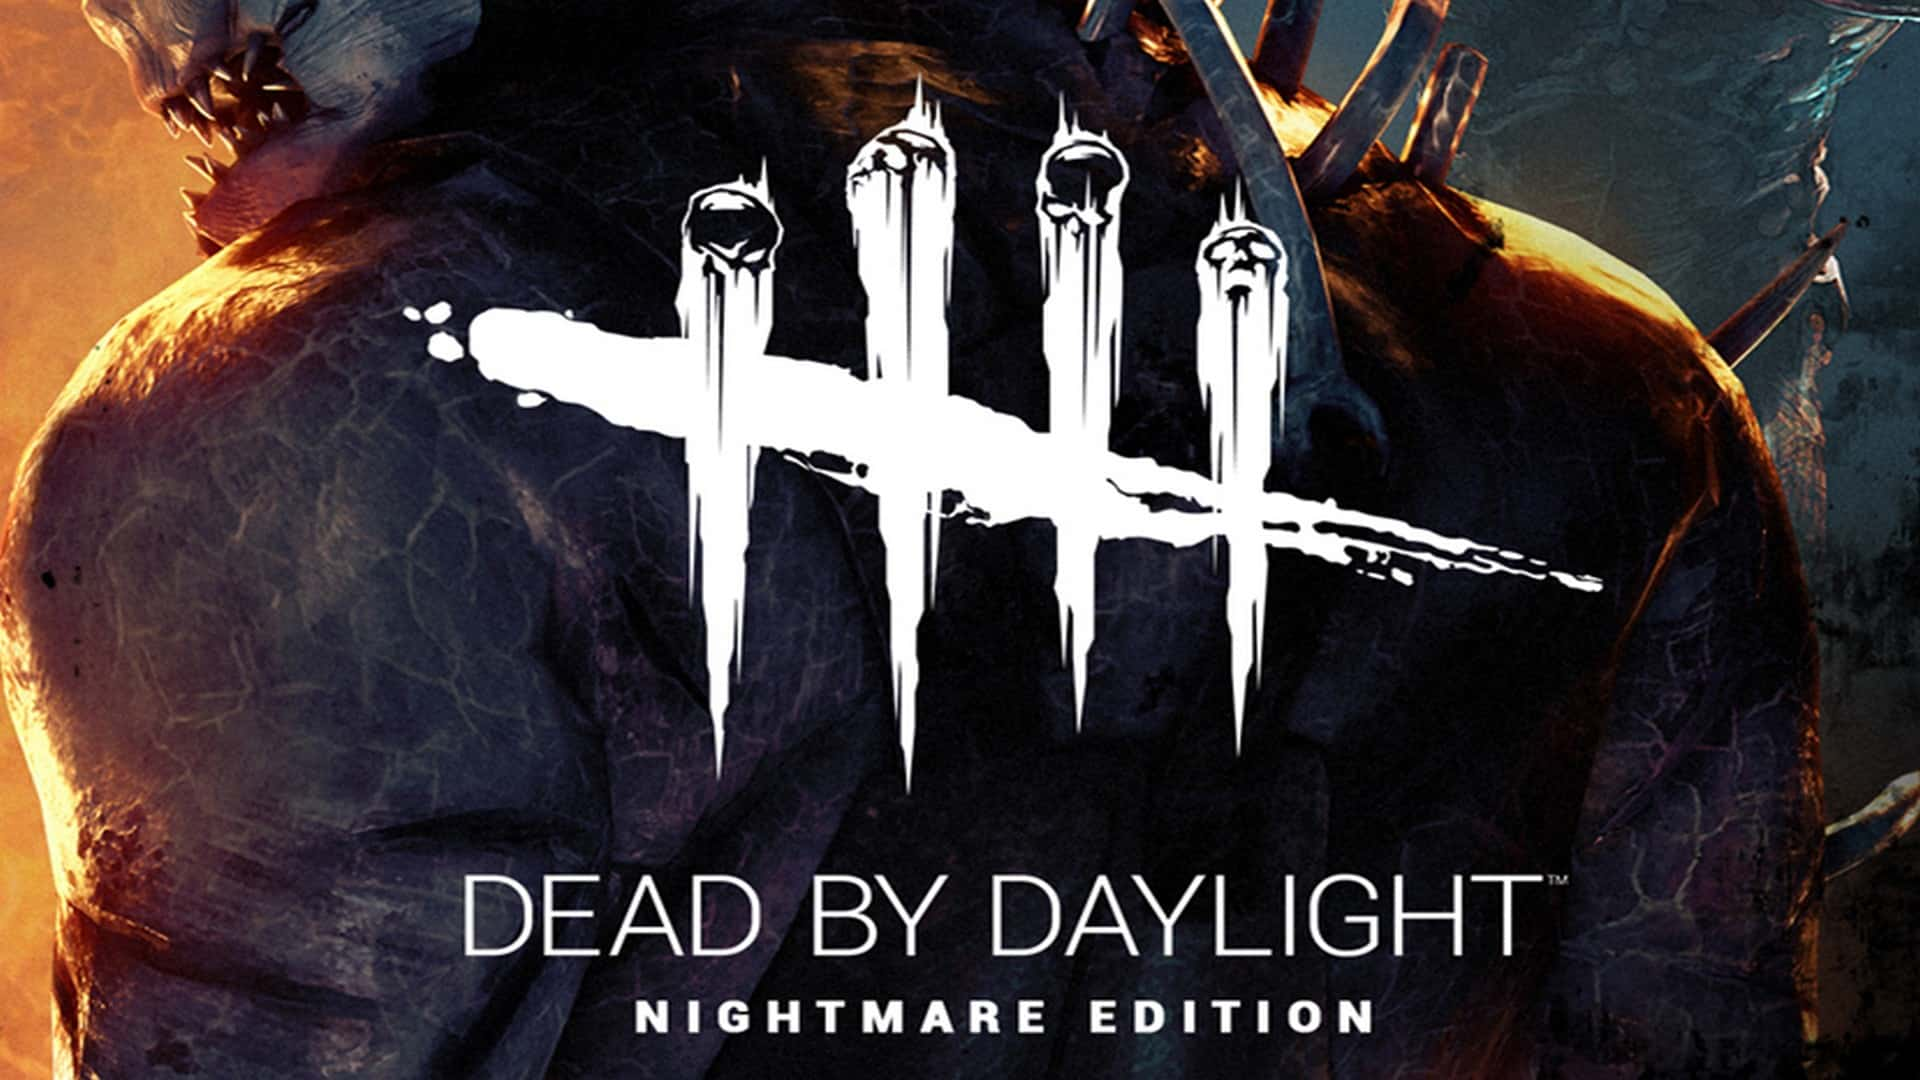 Dead By Daylight Nightmare Edition Offers Holiday Haunts, Now Available At Retail For PS4 & Xbox One